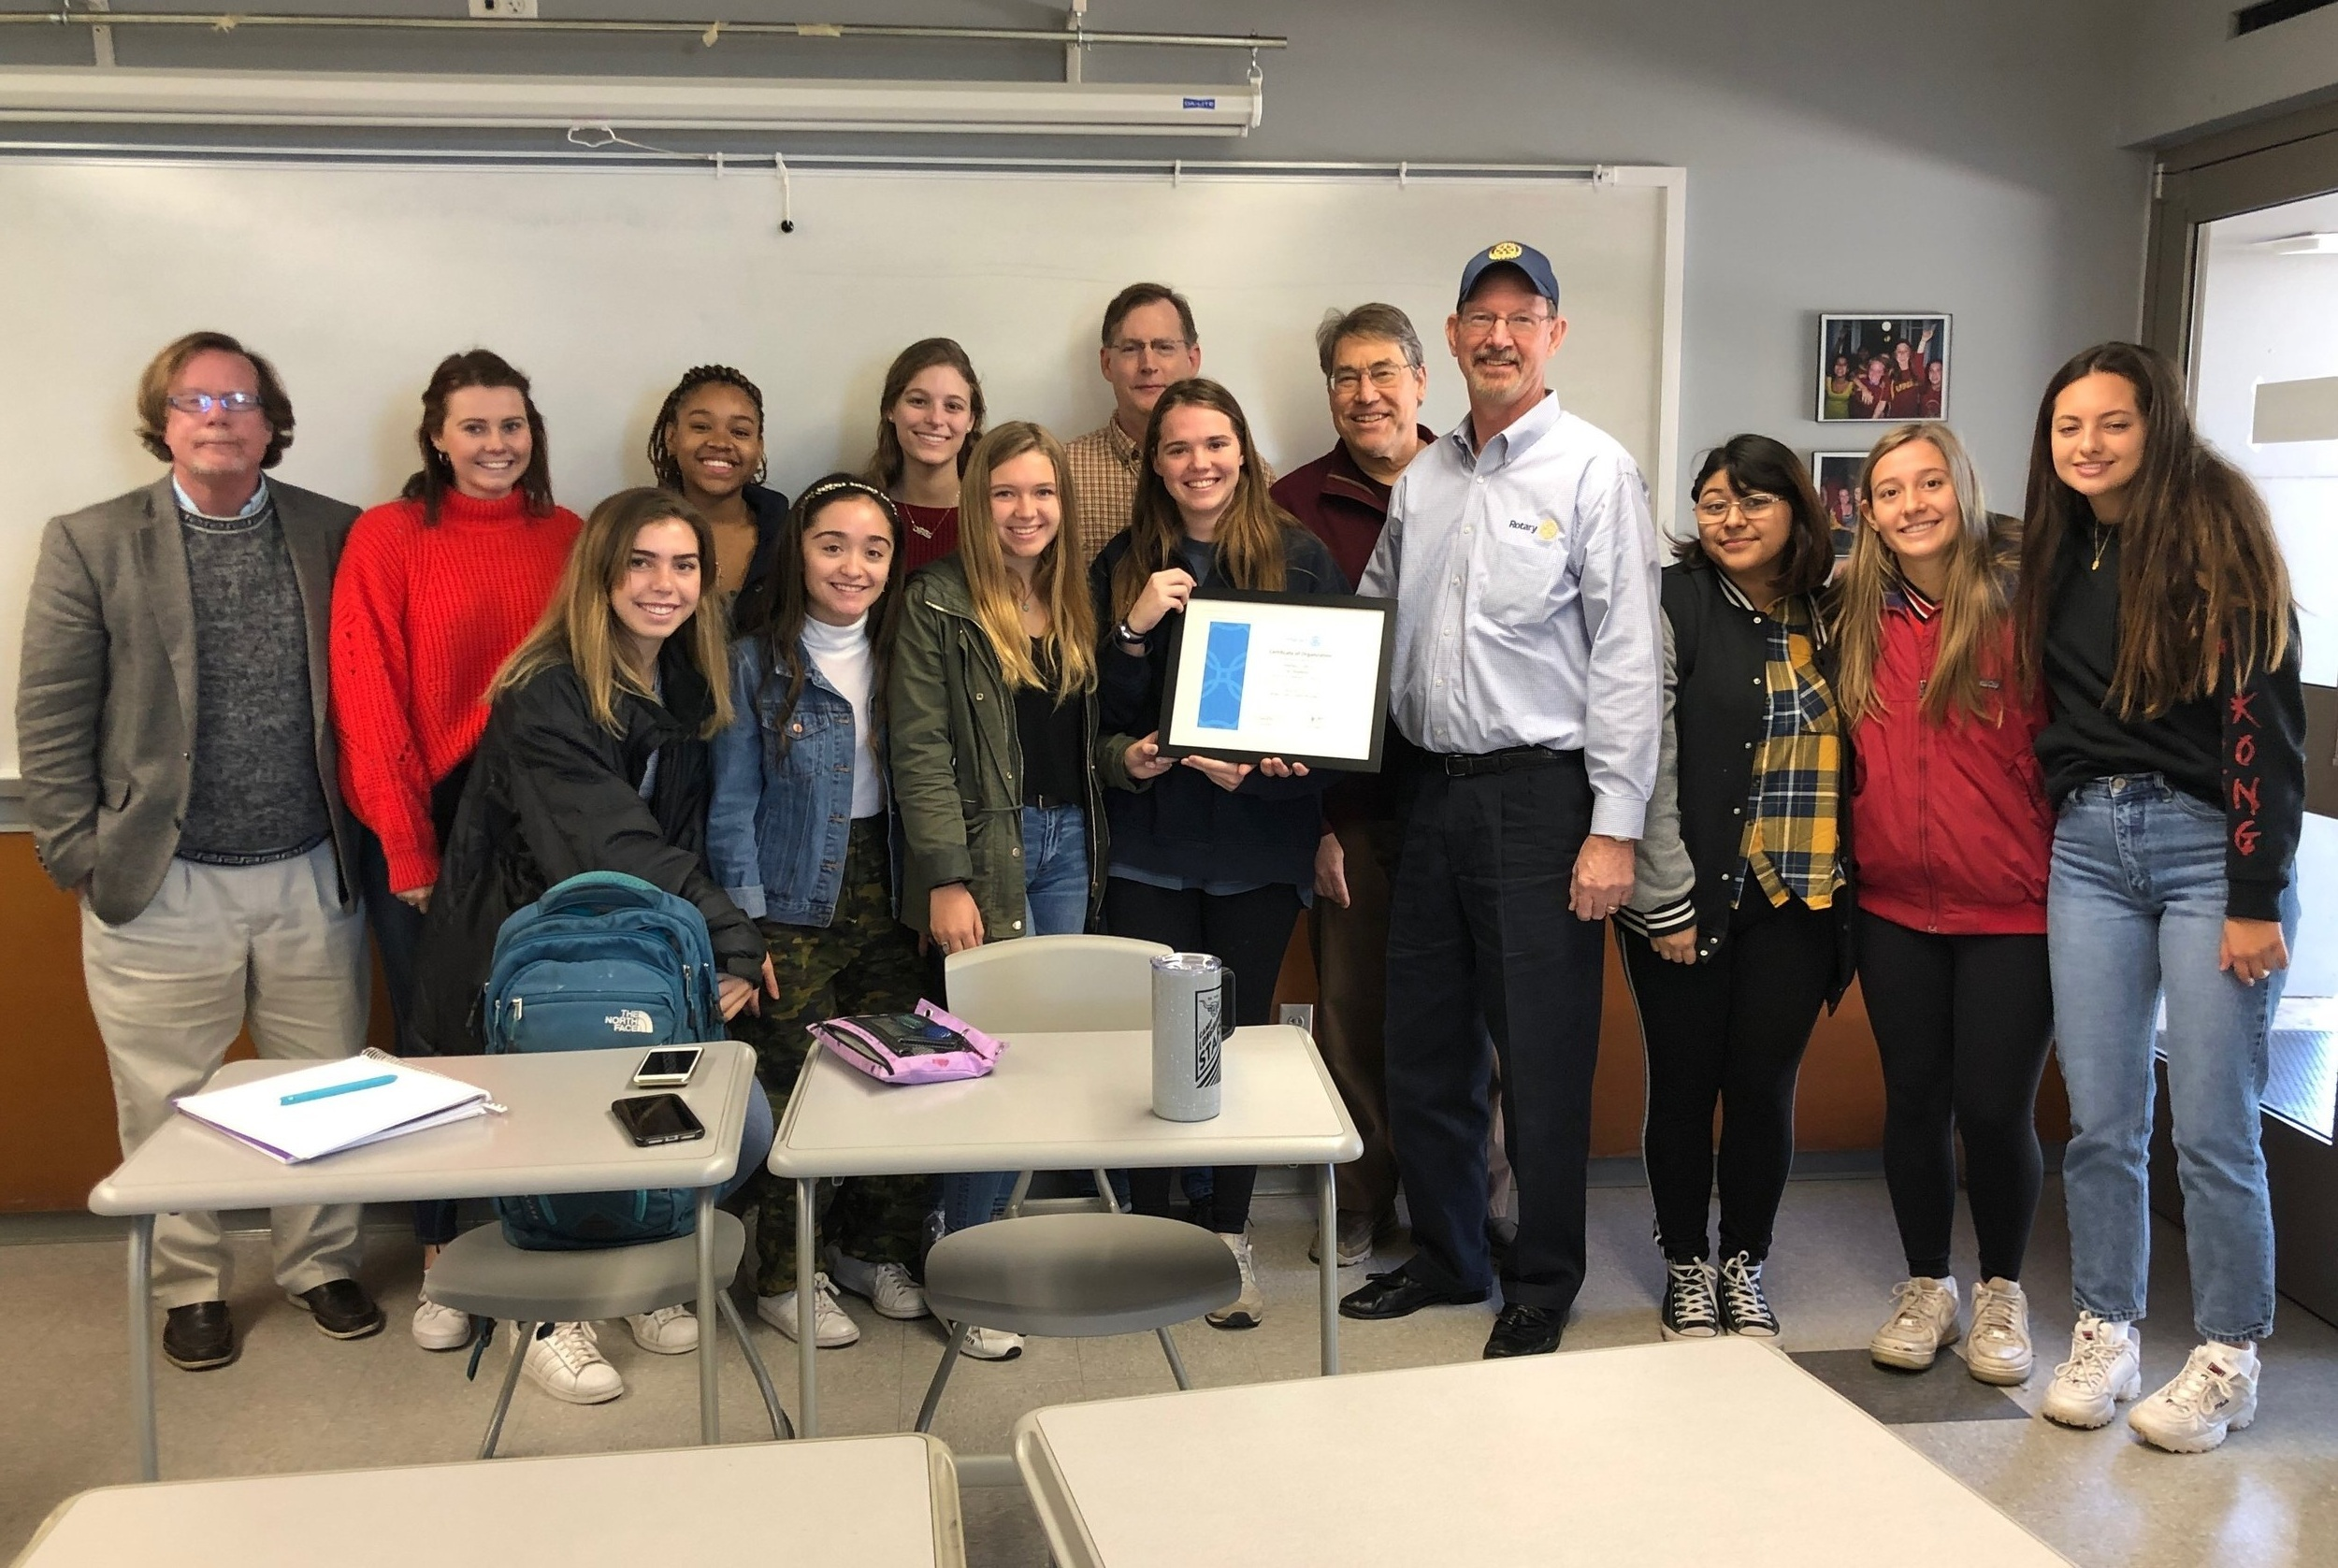 Westlake Rotary presents the newly formed St. Stephens Interact Club with their charter.